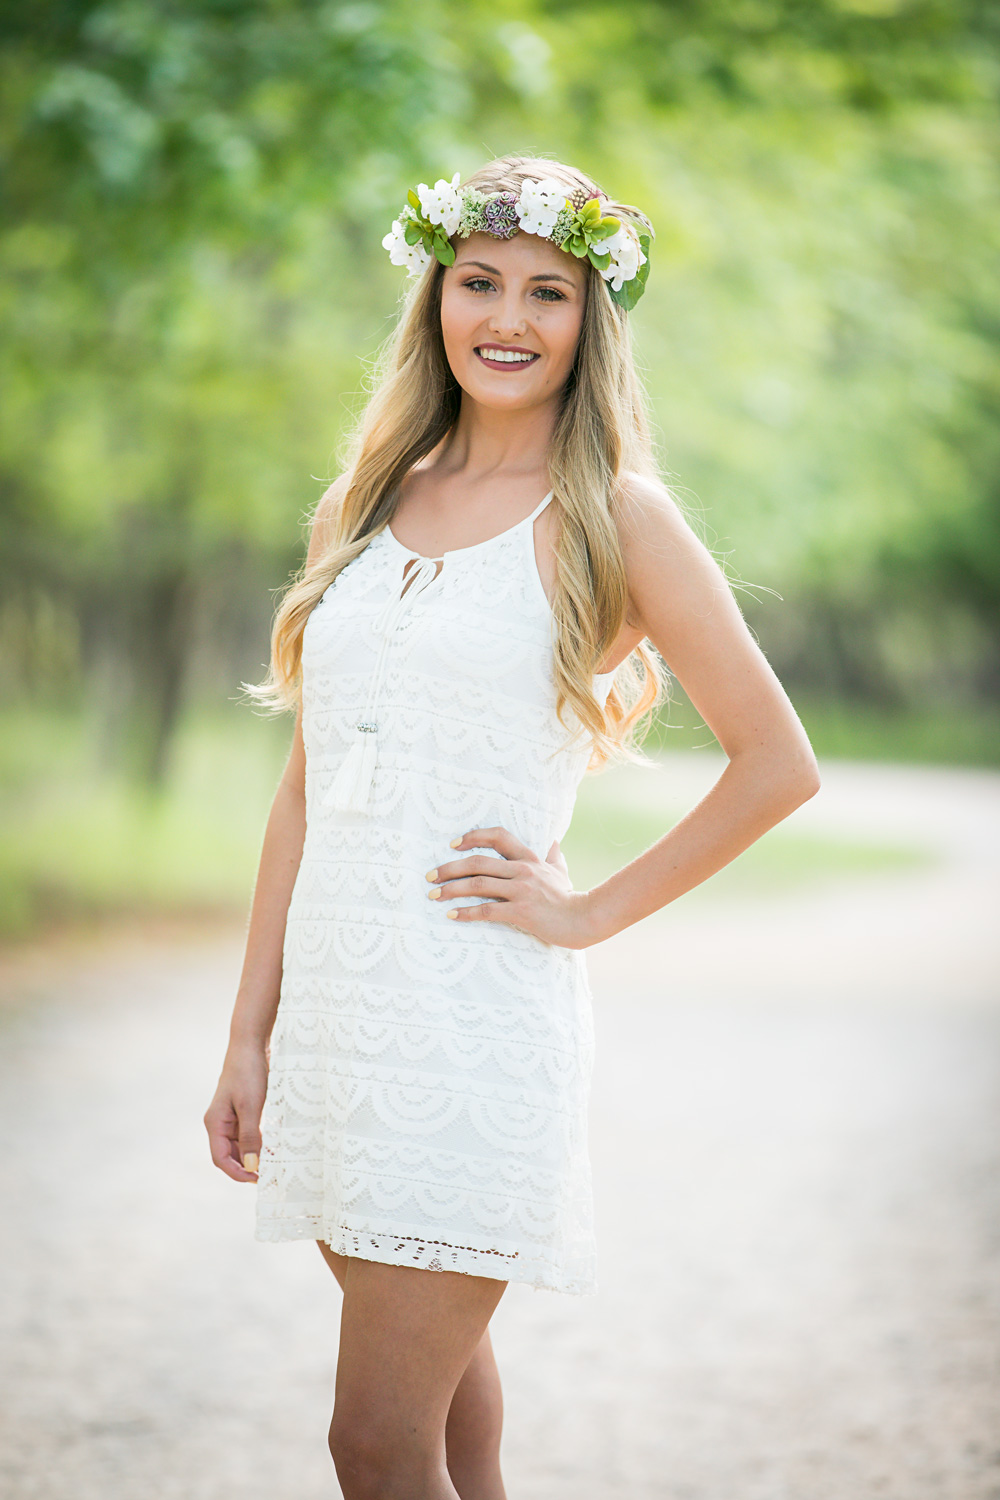 Senior girl wearing short white dress, standing with her hand placed on her hip, smiling at camera at Martin Nature Park in Oklahoma City.